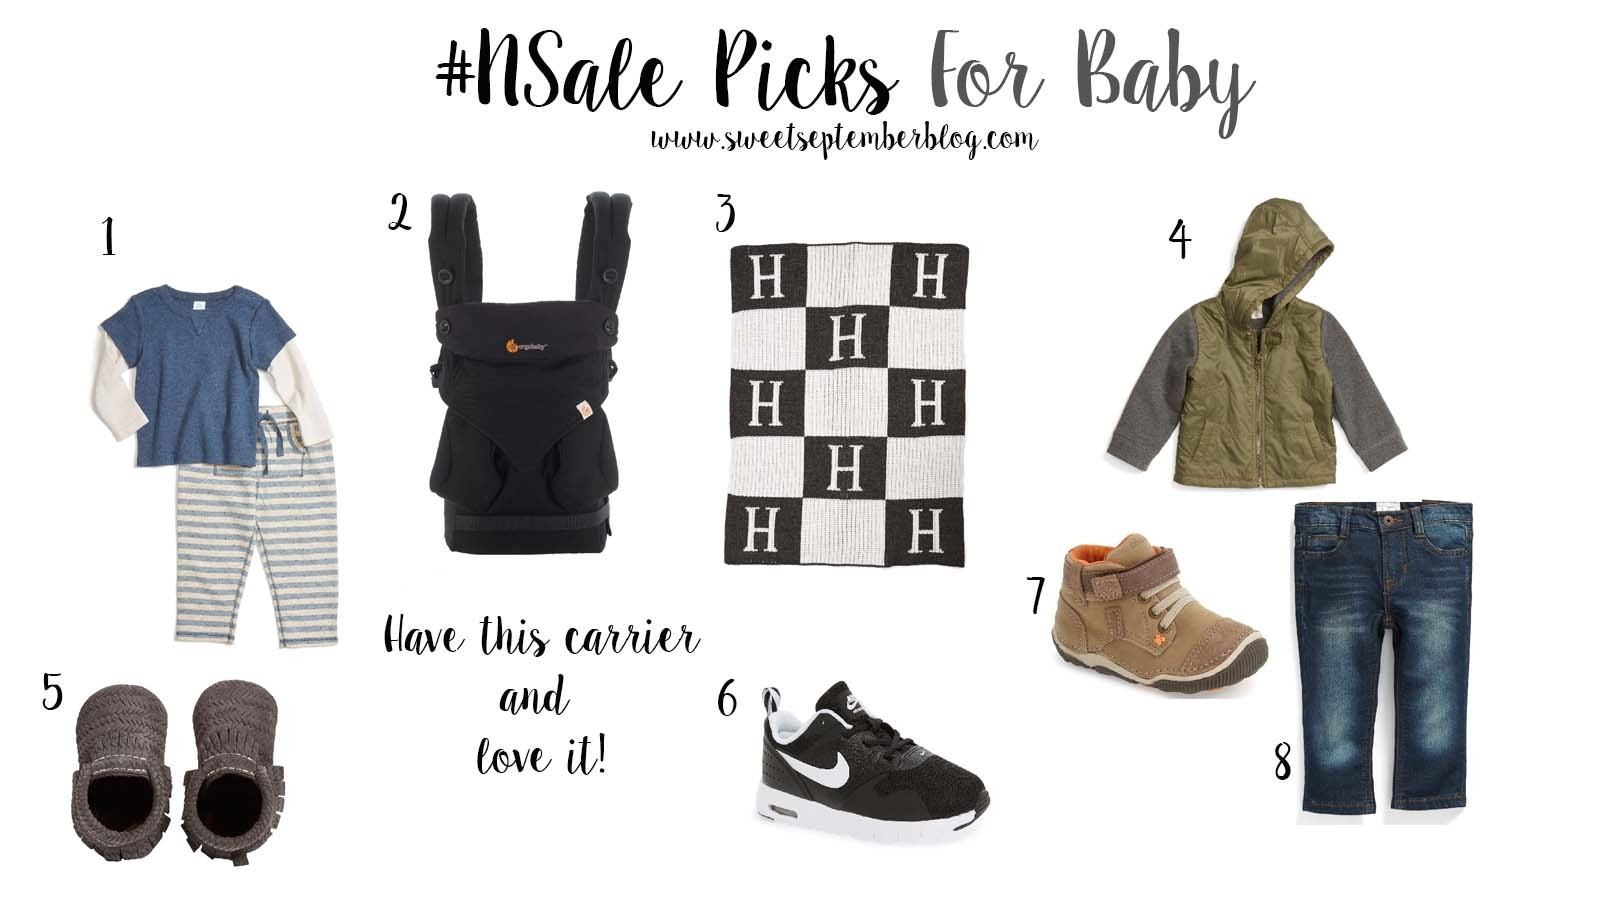 nordstrom anniversary sale picks for baby